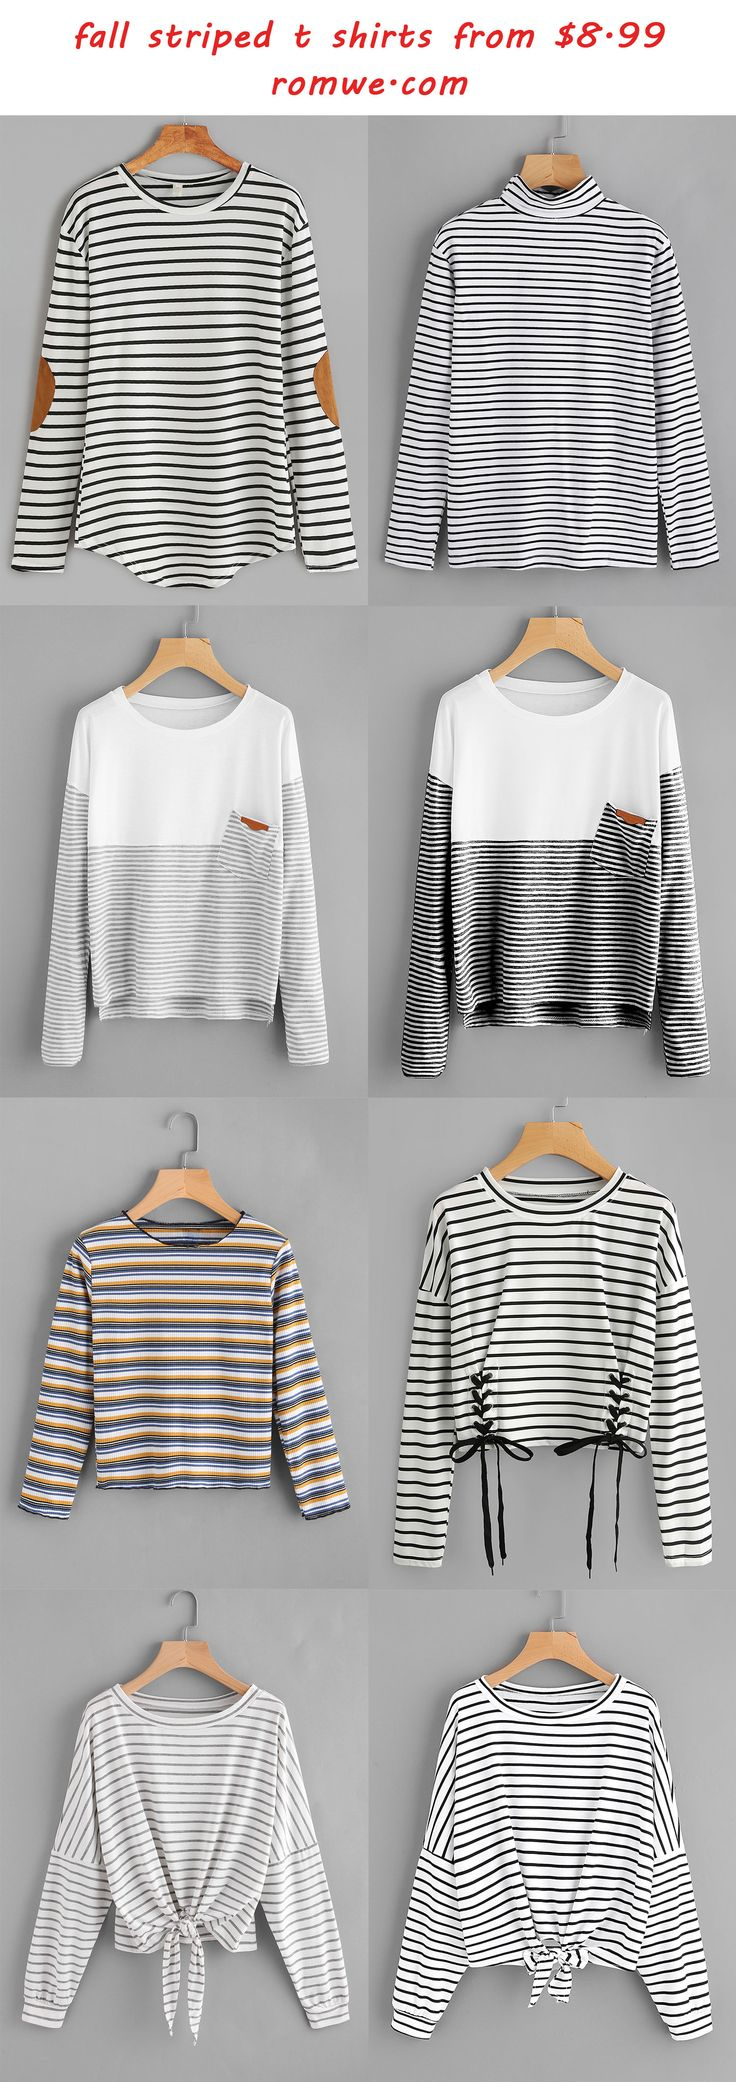 striped t shirts - romwe.com